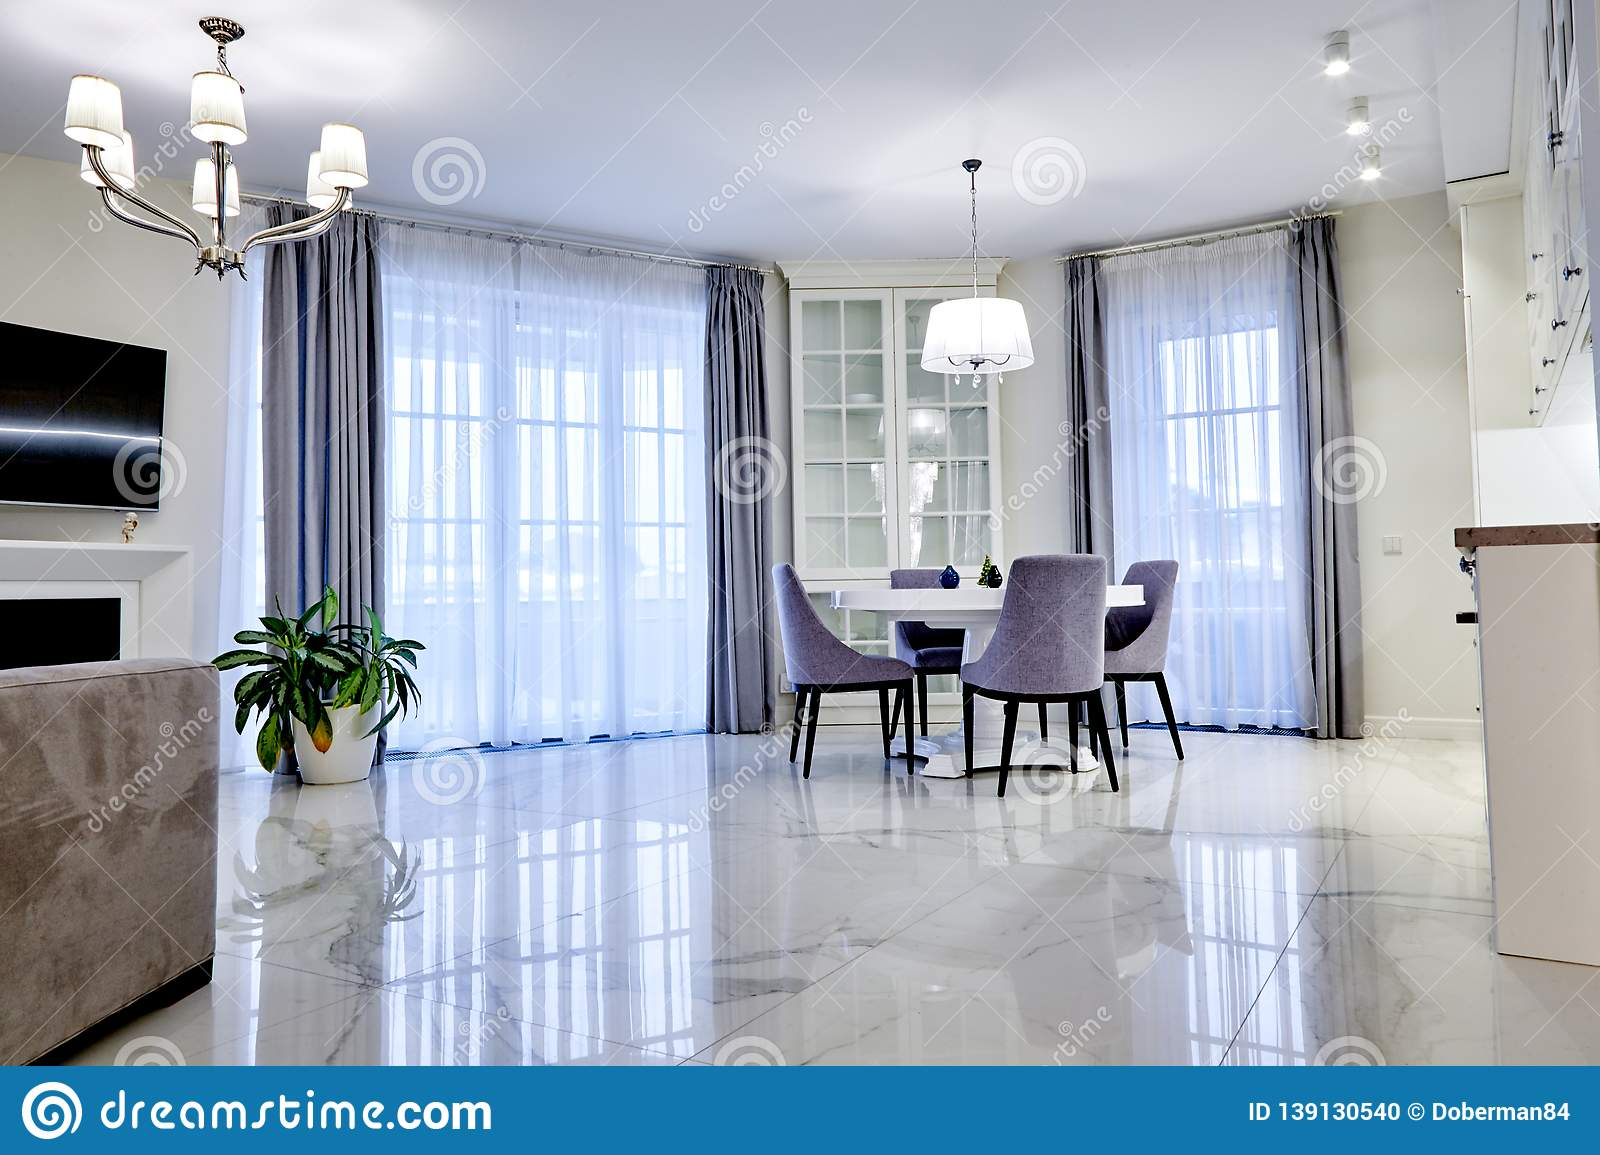 Minimalistic Interior Of Living Room In Light Tone With Marble Flooring Large Windows And A Table For Four Persons Stock Photo Image Of Marble Mansion 139130540